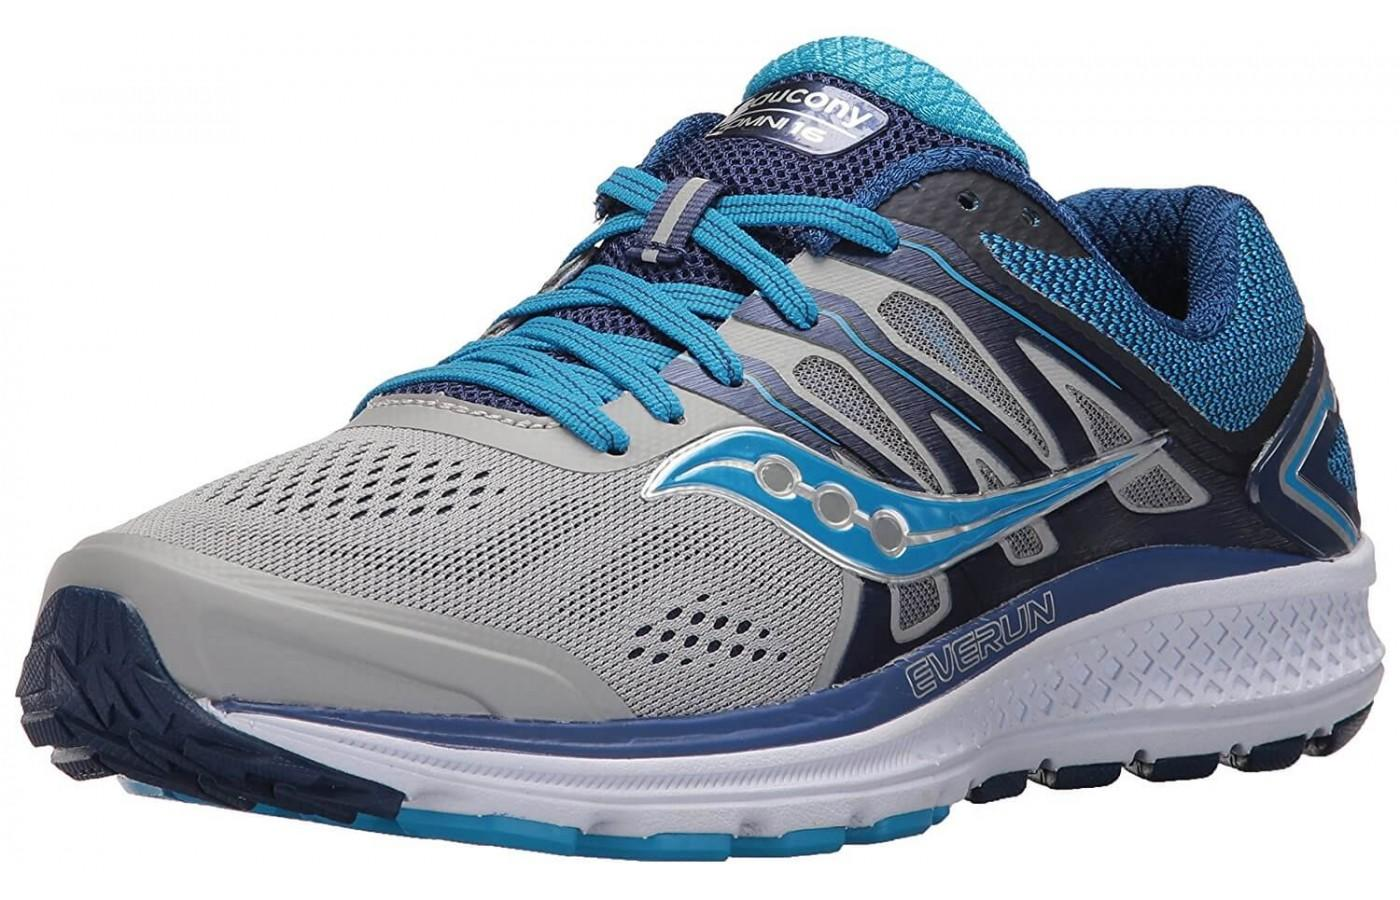 The Saucony Omni 16 made key improvements to its previous model.